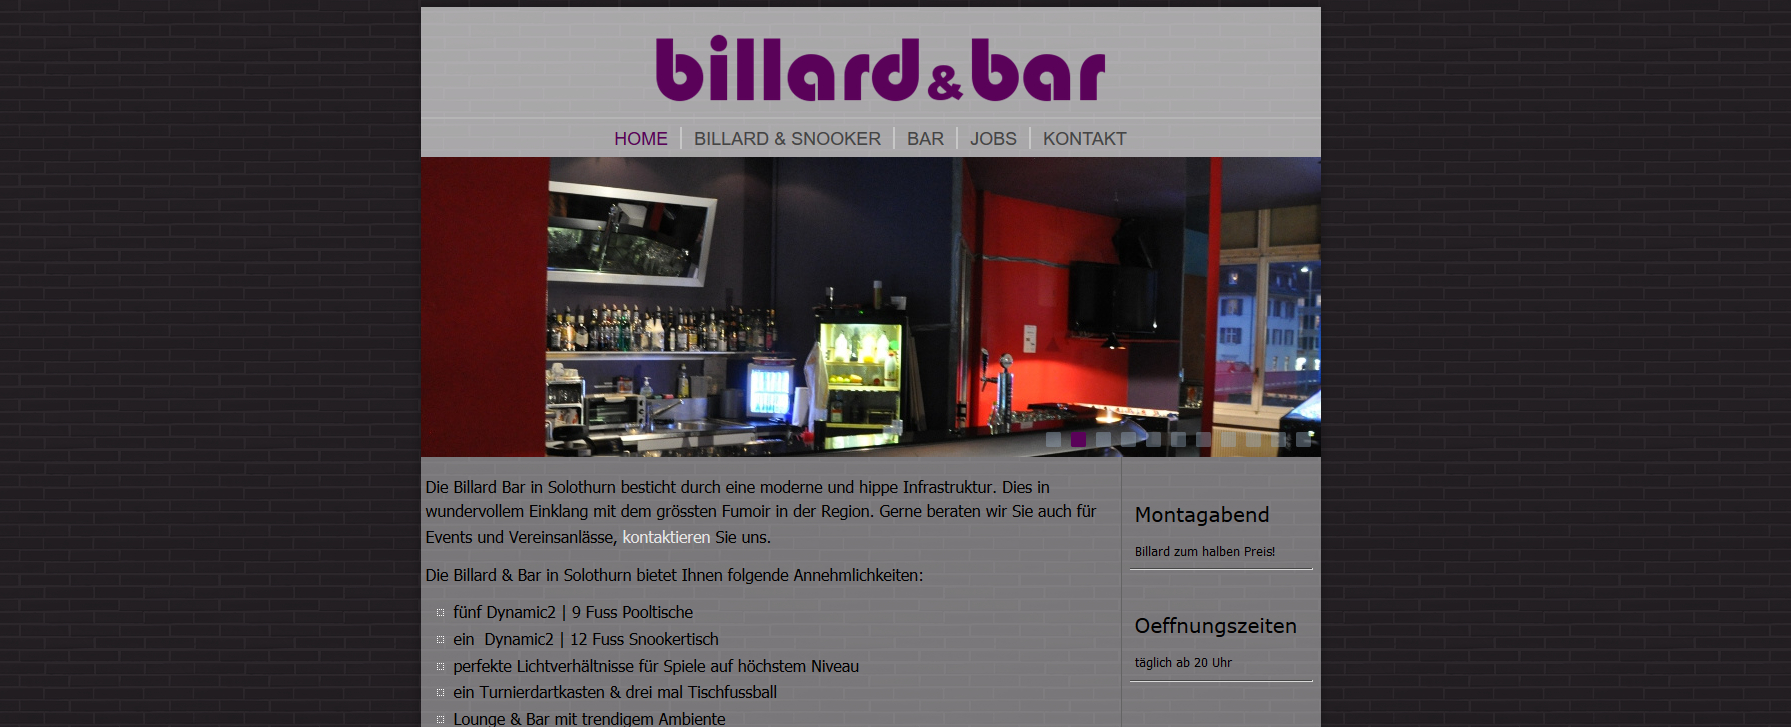 slider_billard-bar.jpg